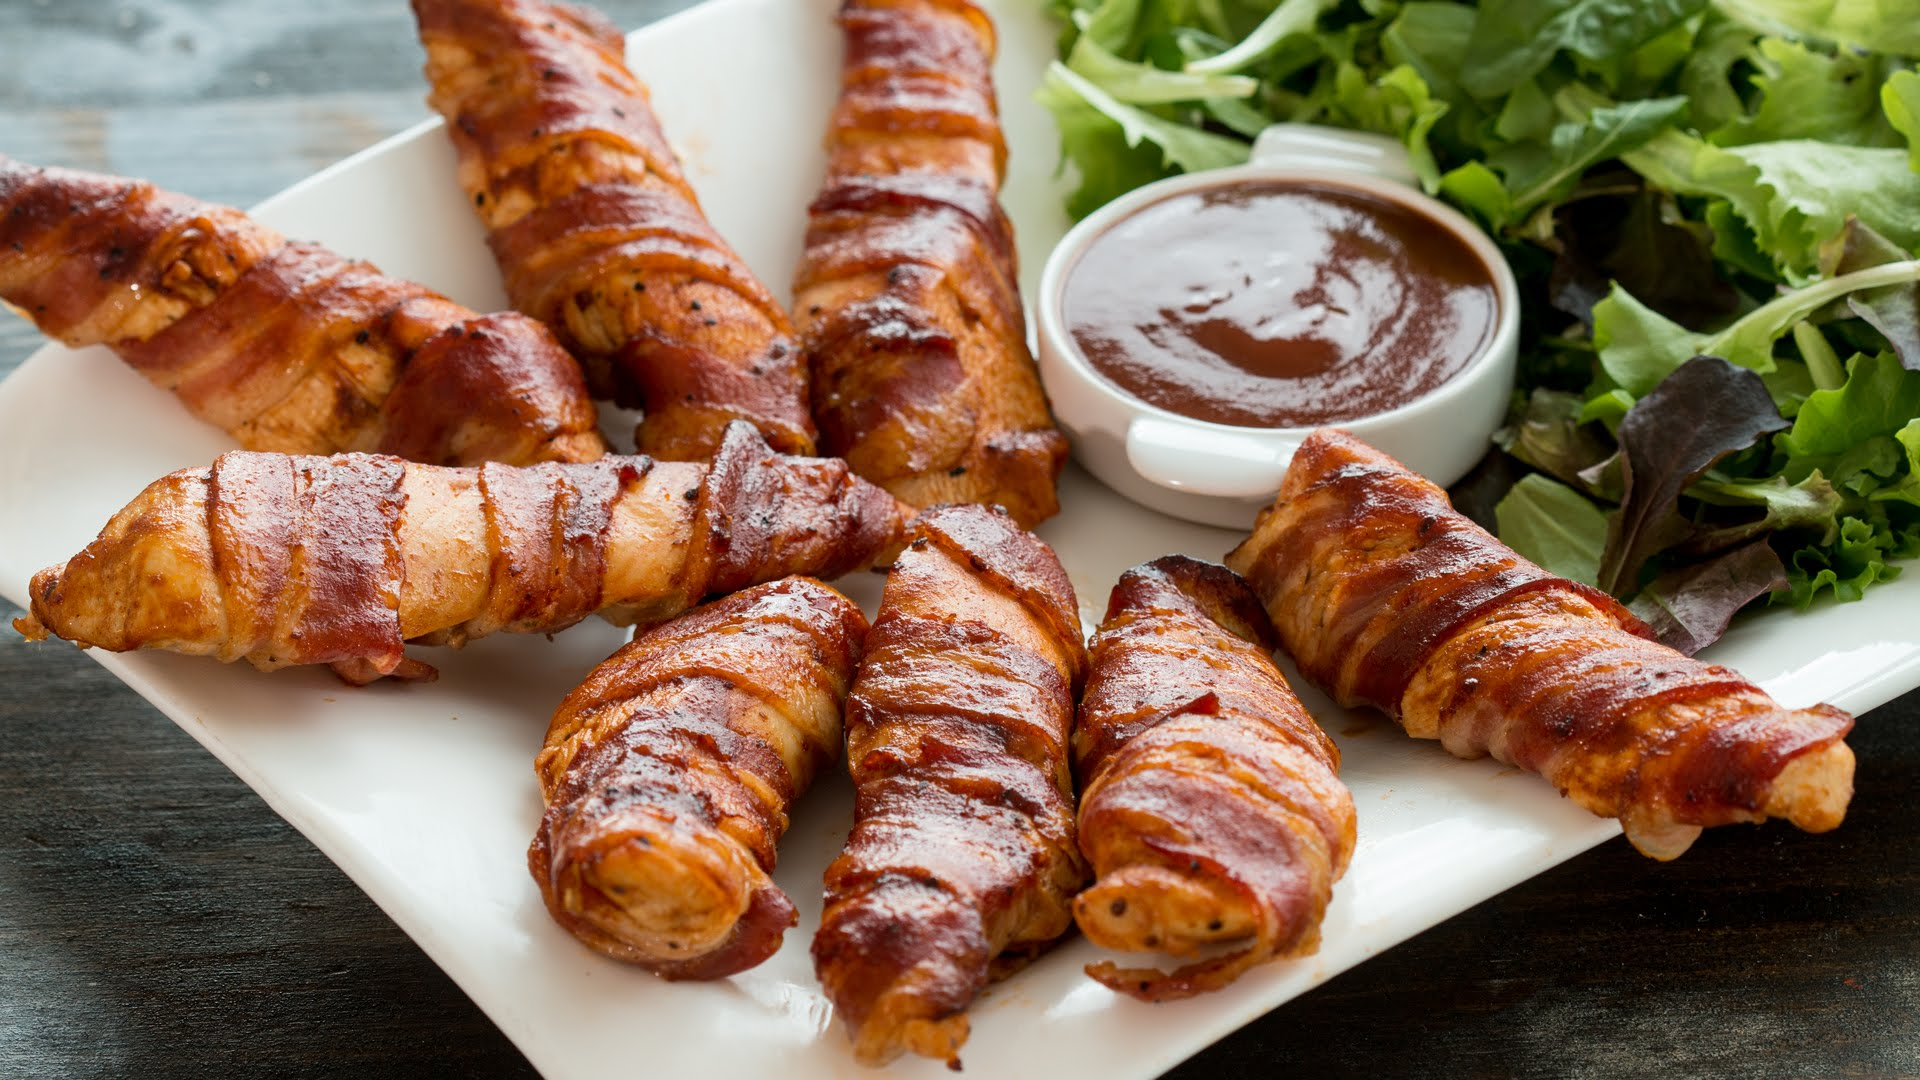 This Bacon Wrapped Chicken Recipe Will Have You Running Straight To The Grill